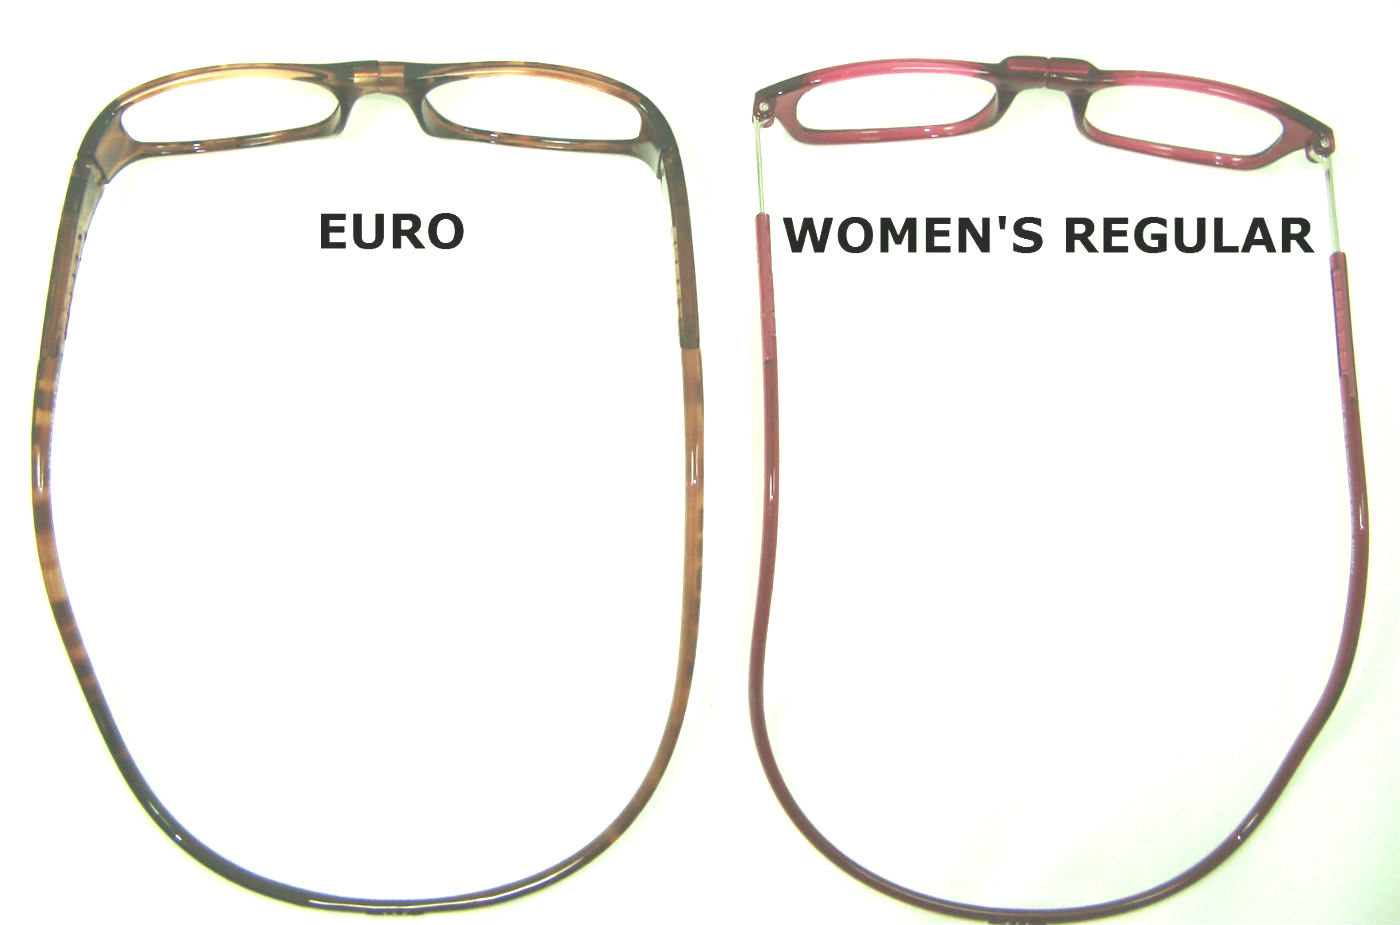 EURO&WOMEN'S REGULAR WEB 2